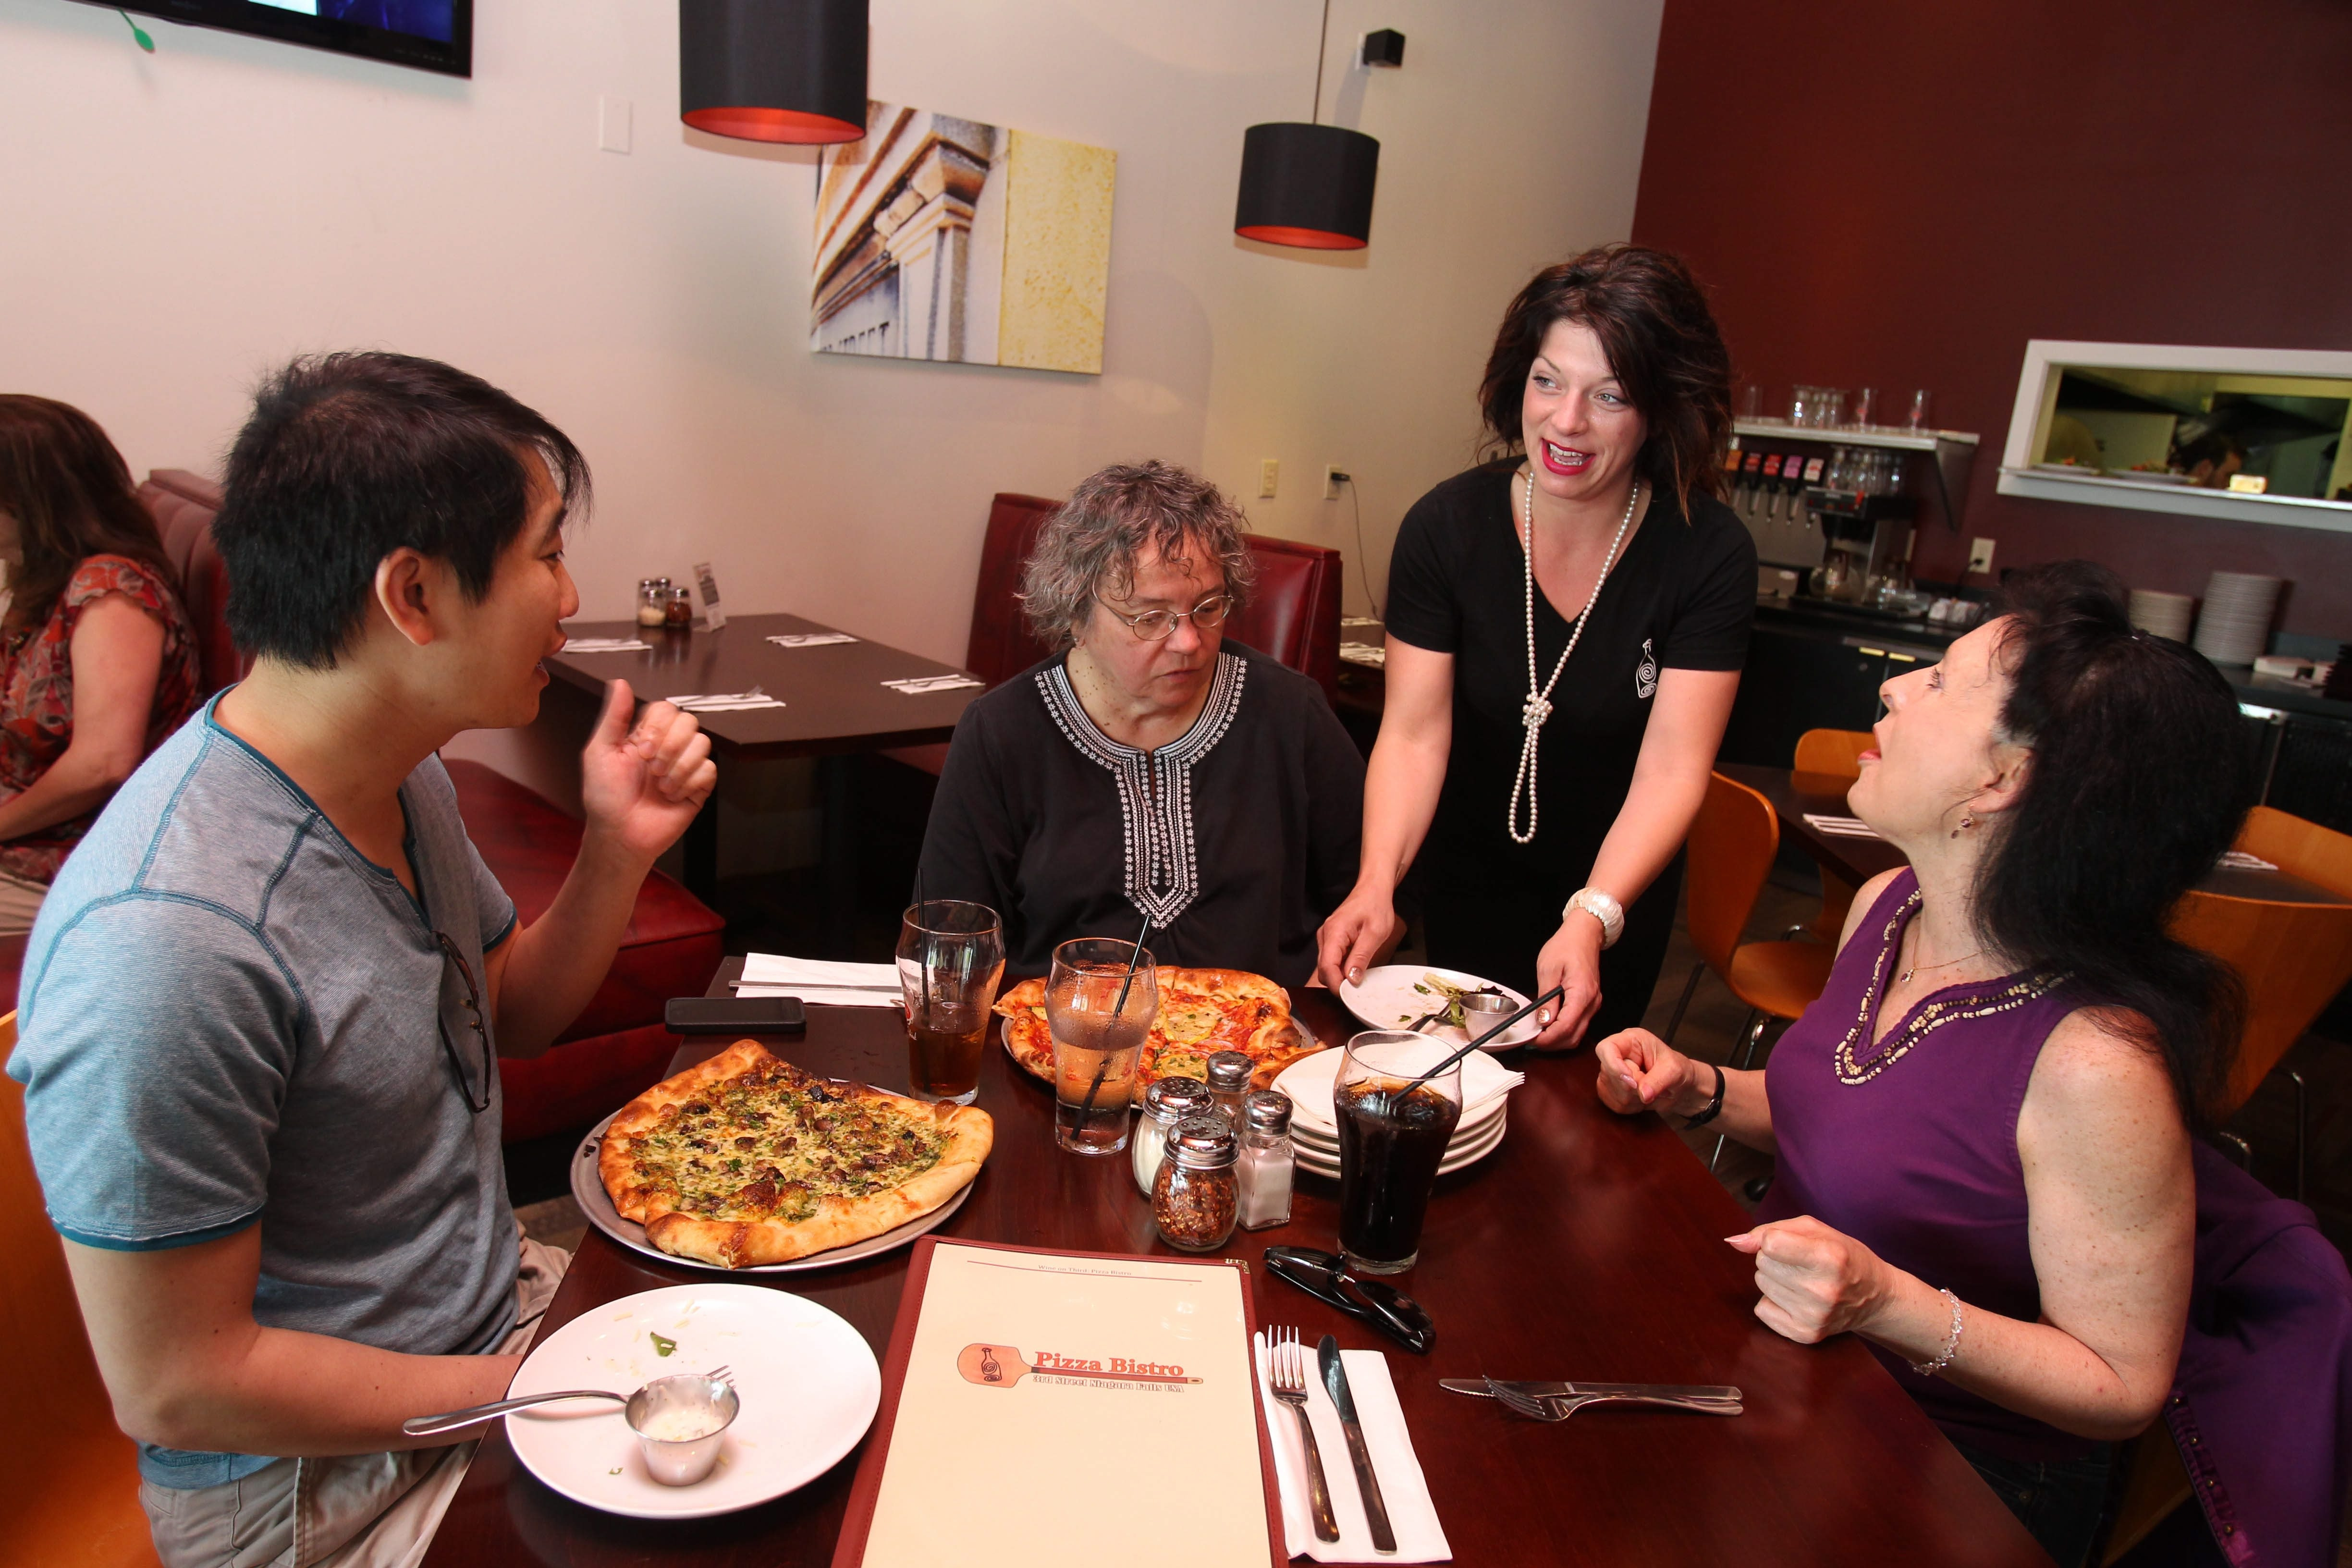 Caroline Boback serves customers at Pizza Bistro on Third Street in Niagara Falls.  Customers, from left, are Chris Yuen of Niagara Falls, Marcia Mitrowski of Buffalo and Marsha Christiano of Amherst.